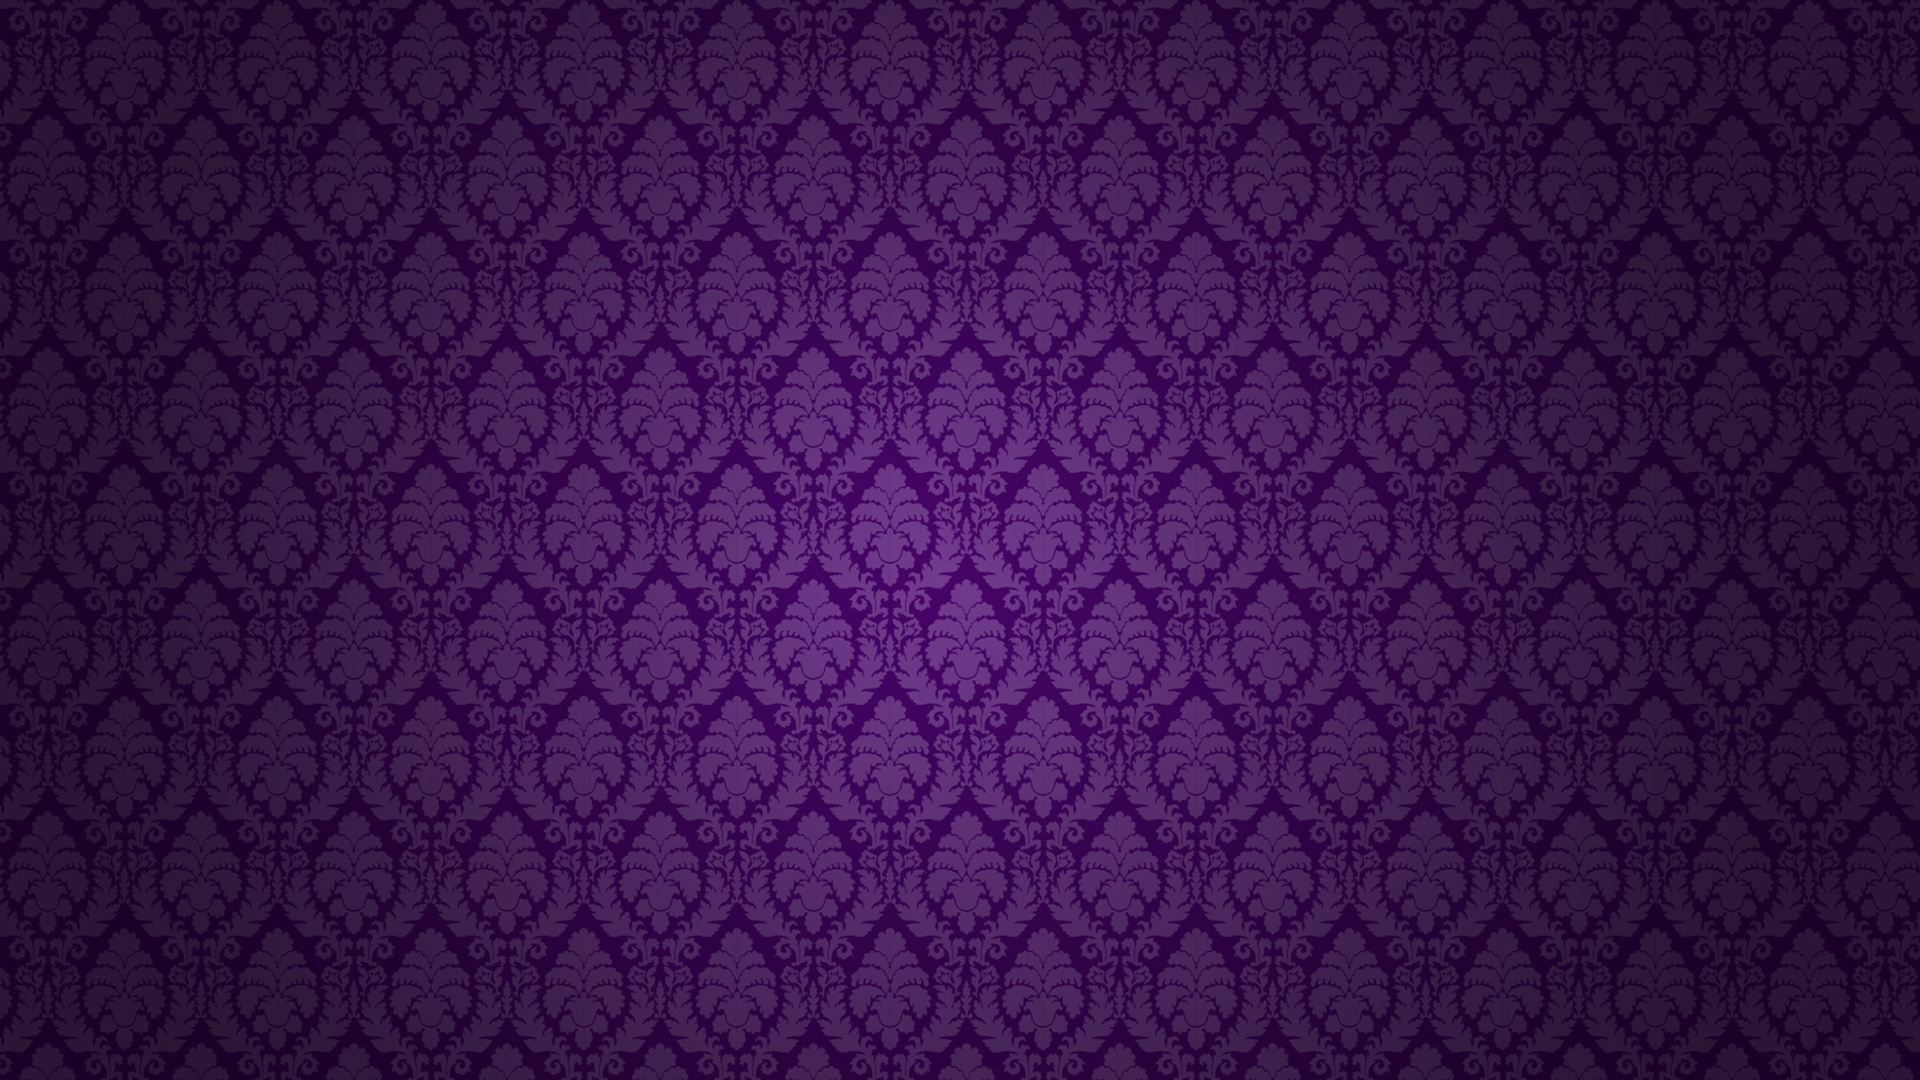 39 High Definition Purple Wallpaper Images for Download 1920x1080